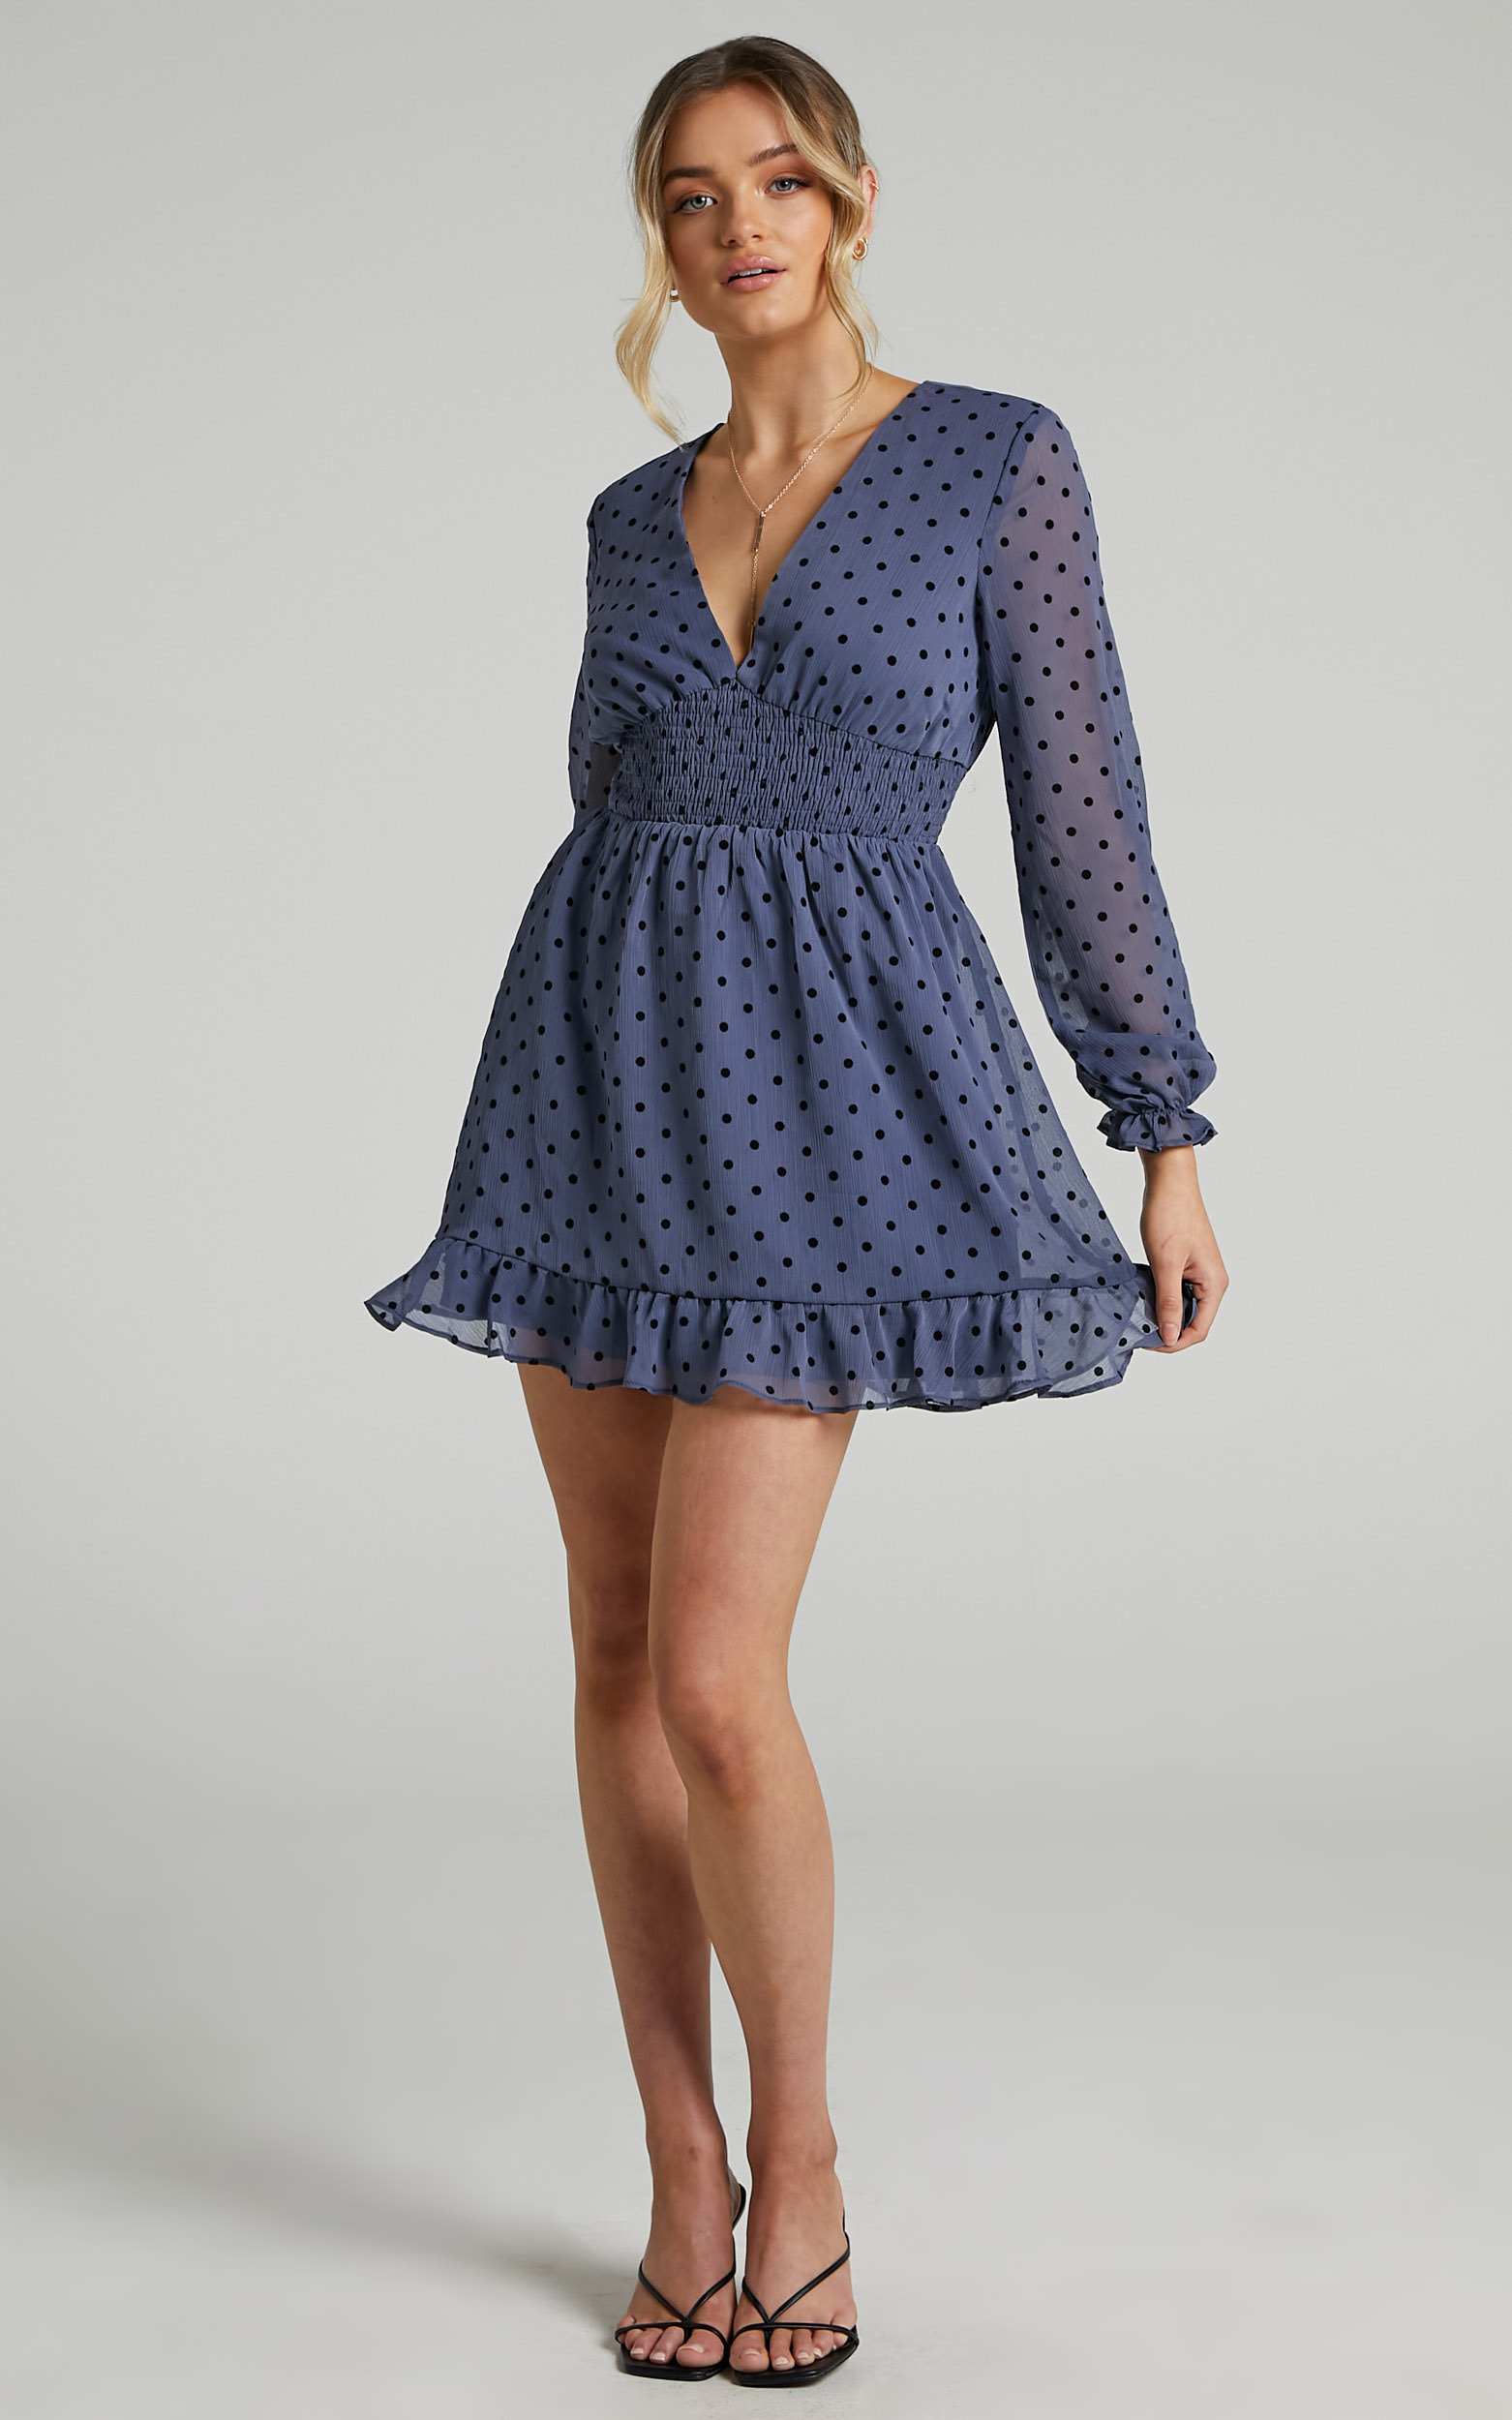 Pretty As You Long Sleeve Mini Dress in Blue Spot - 04, BLU1, hi-res image number null